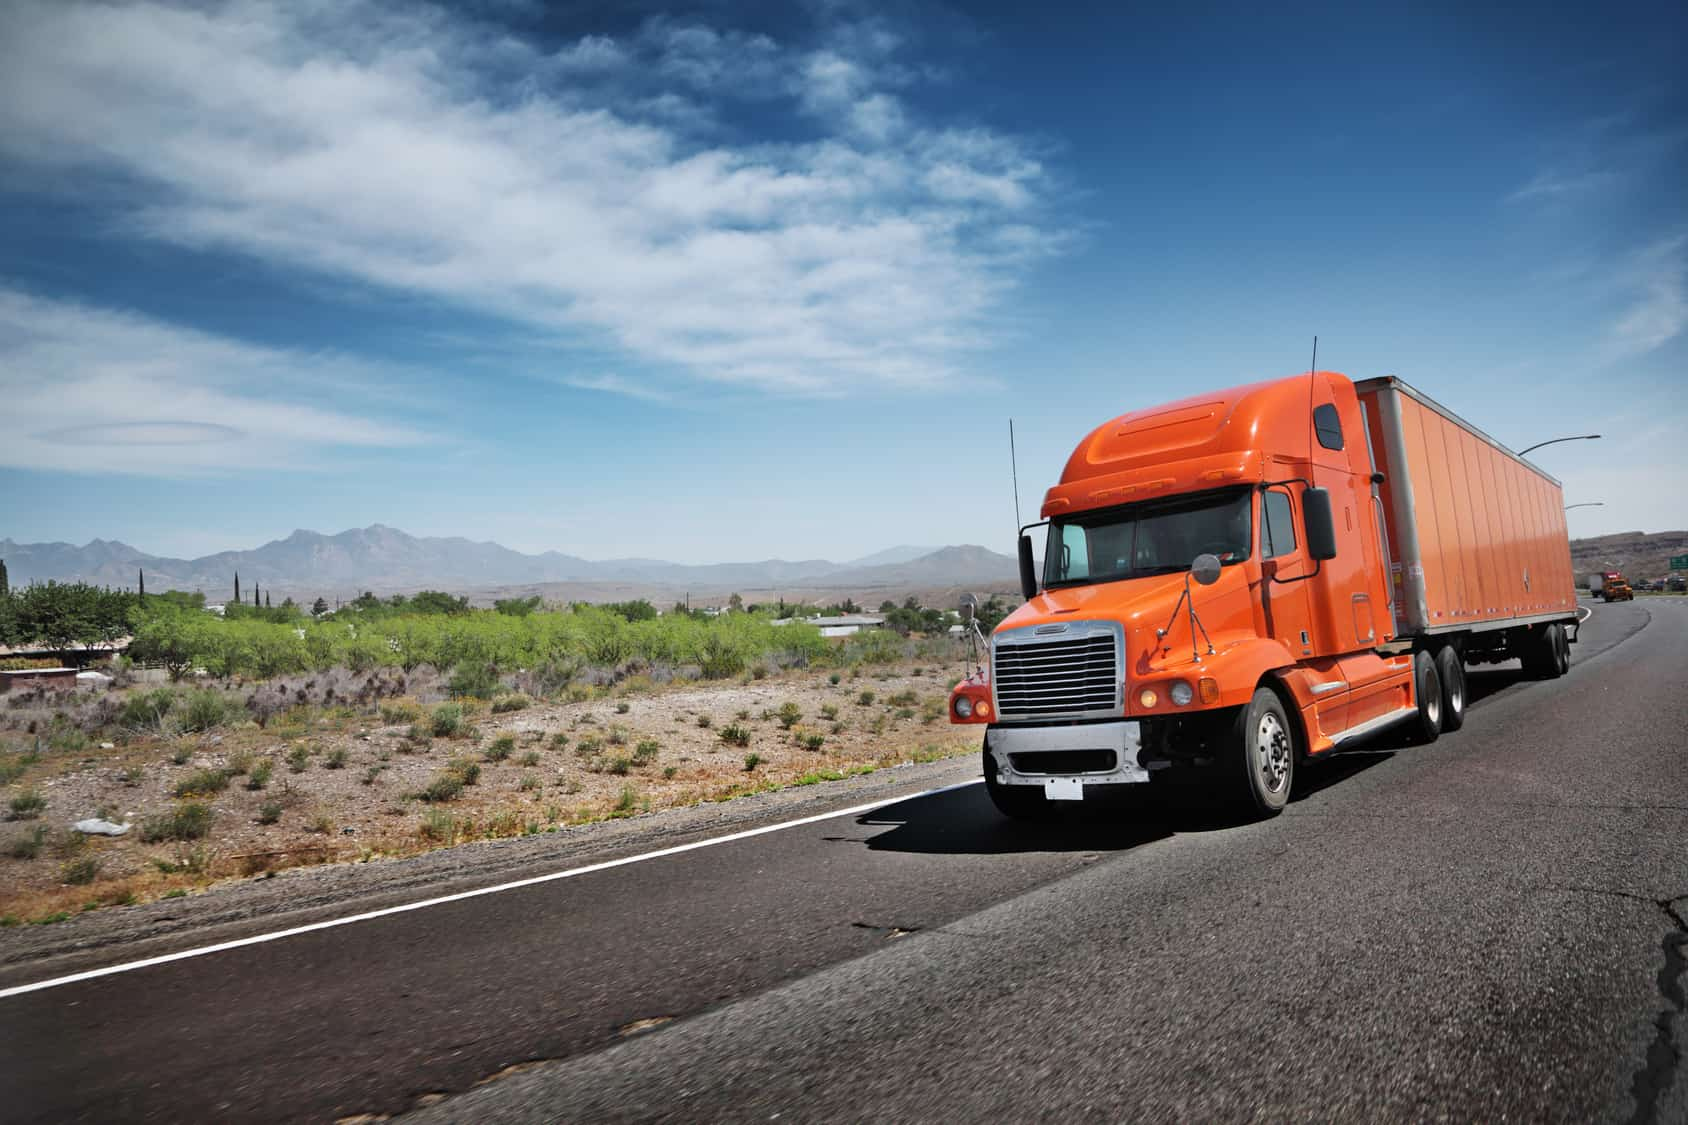 What Is Important To Know Before Joining A Good Trucking Company?